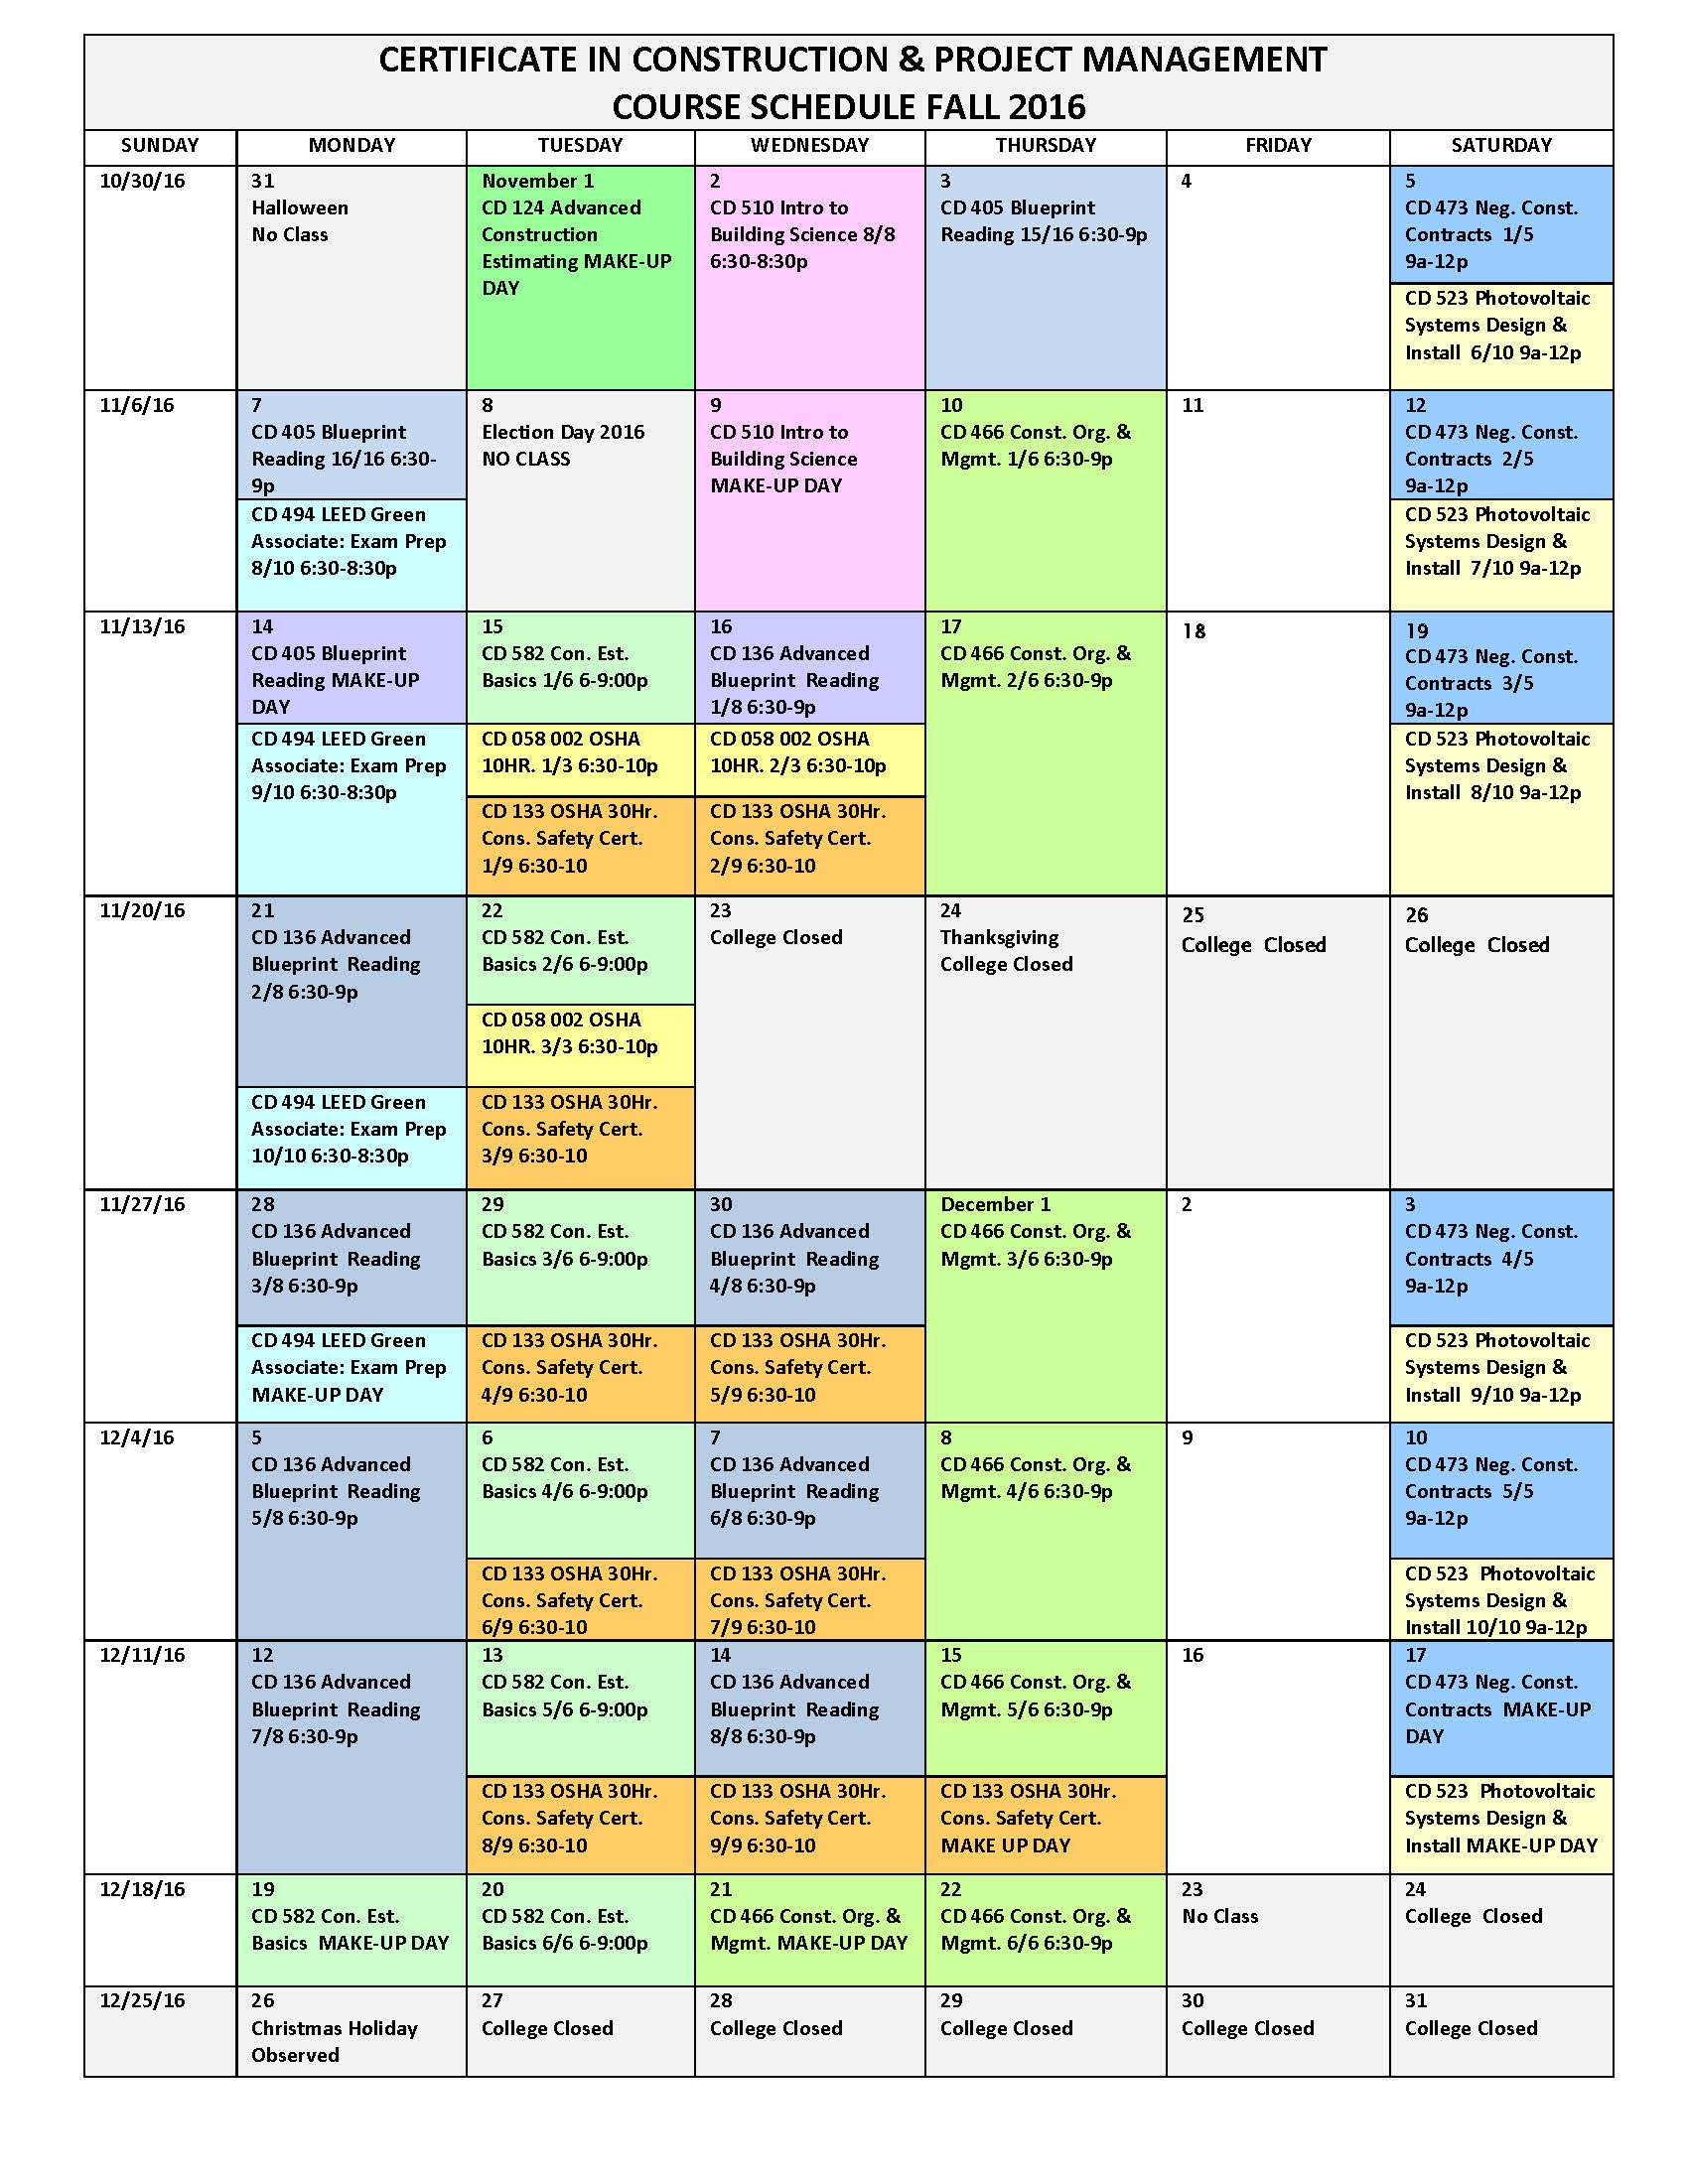 Bergen Community College Fall Course Calendar Certificate In